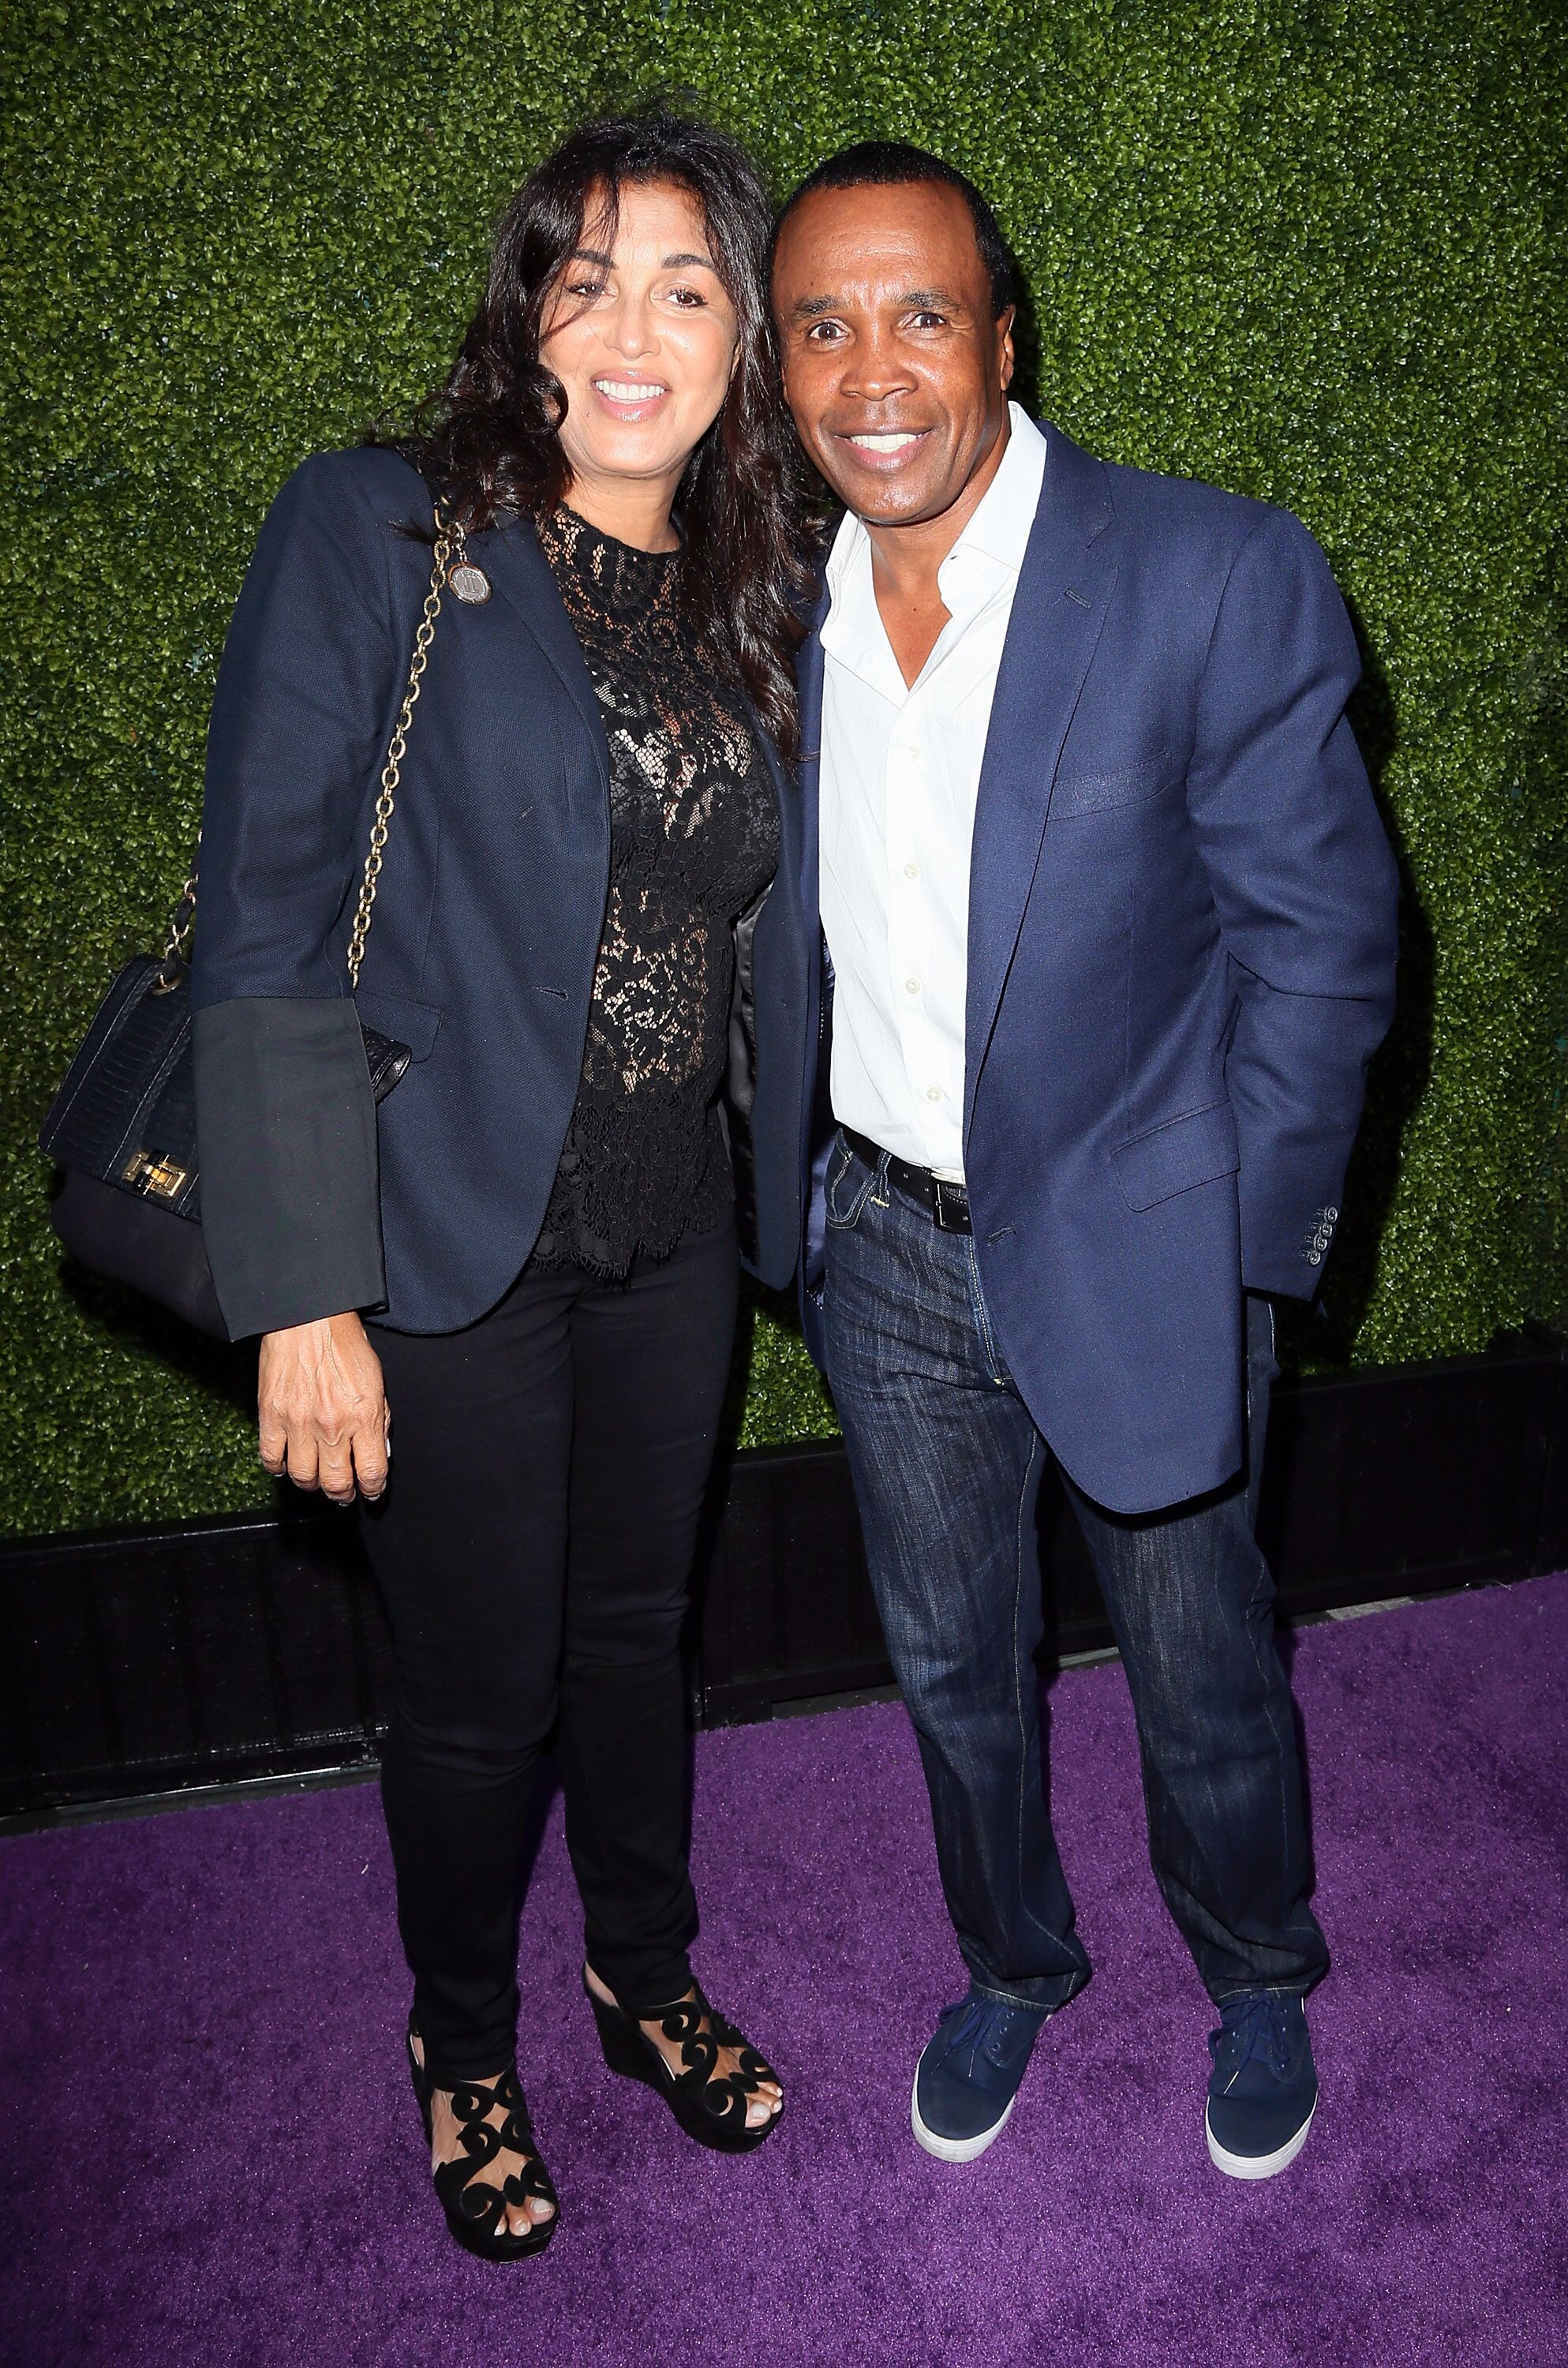 Sugar Ray Leonard and wife Bernadette Robi at the 11th Annual DesignCare Event./ Source: Getty Images